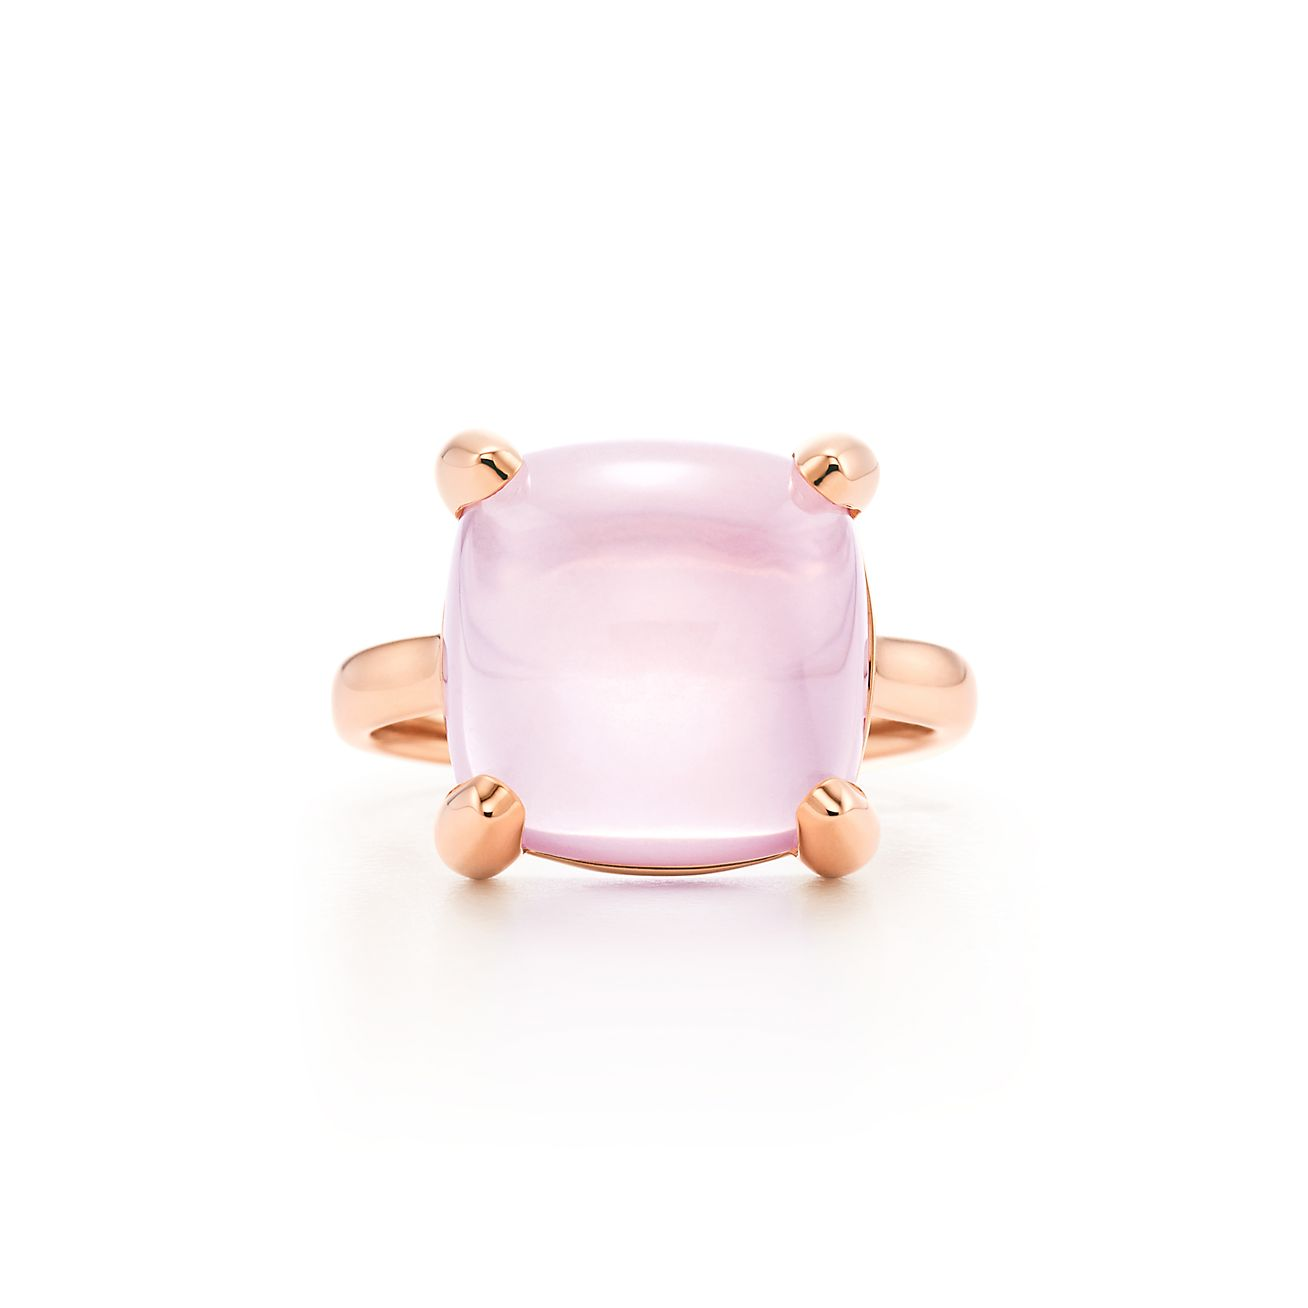 Palomas Sugar Stacks ring in 18k rose gold with a rose quartz - Size 6 Tiffany & Co.